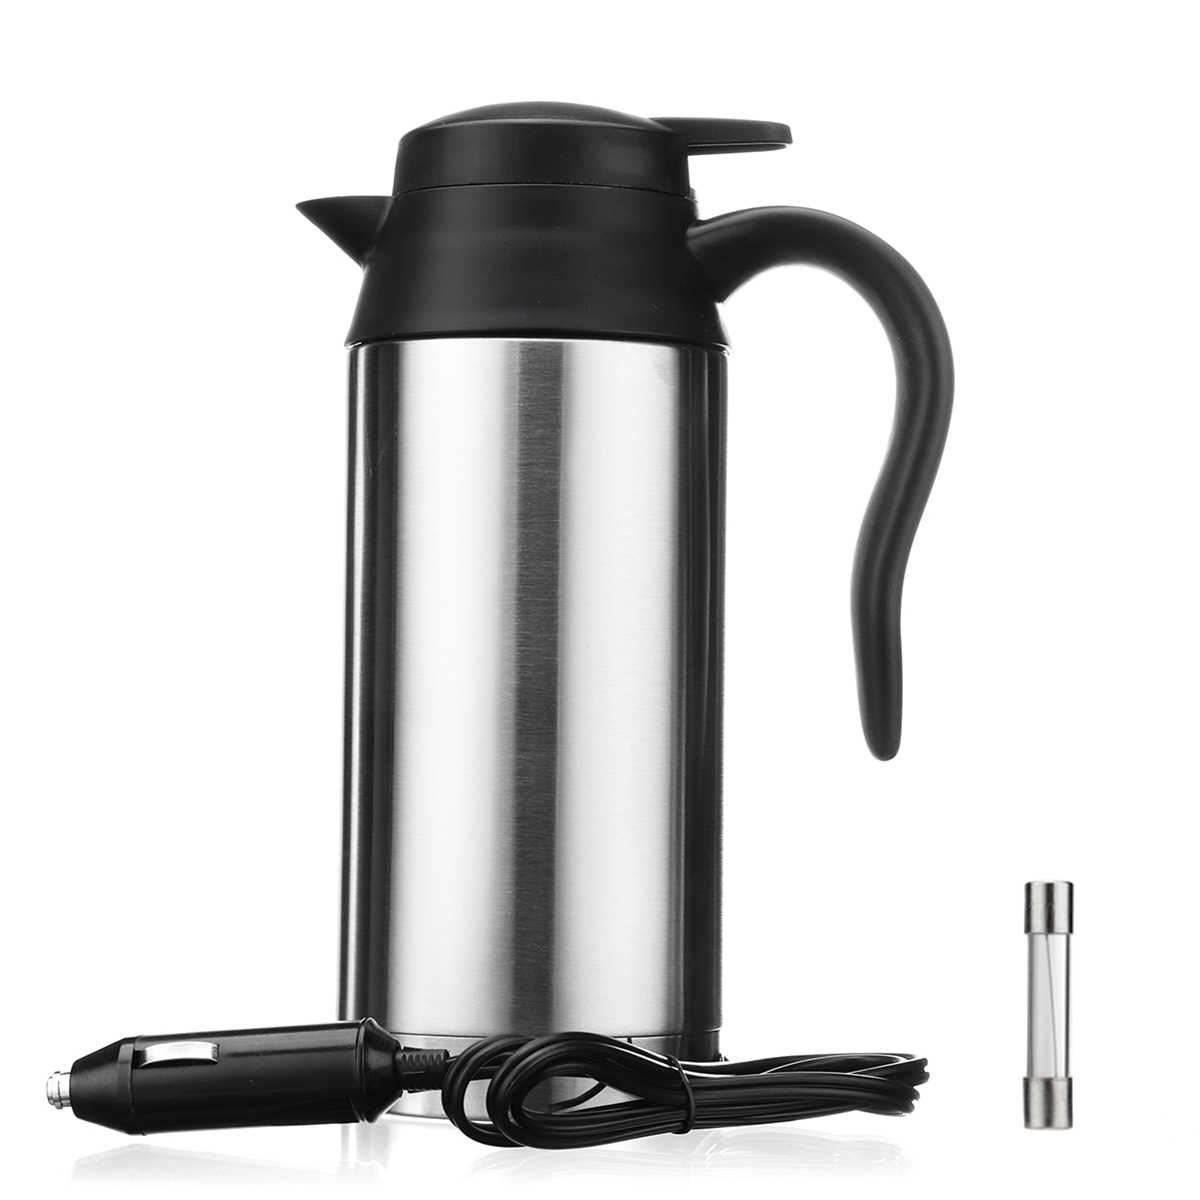 24V 750ml In Car Electric Kettle Vehicular Travel Mounted Thermal Heated Mug Motor Hot Water Coffee Tea Auto Heating Boiling Mug